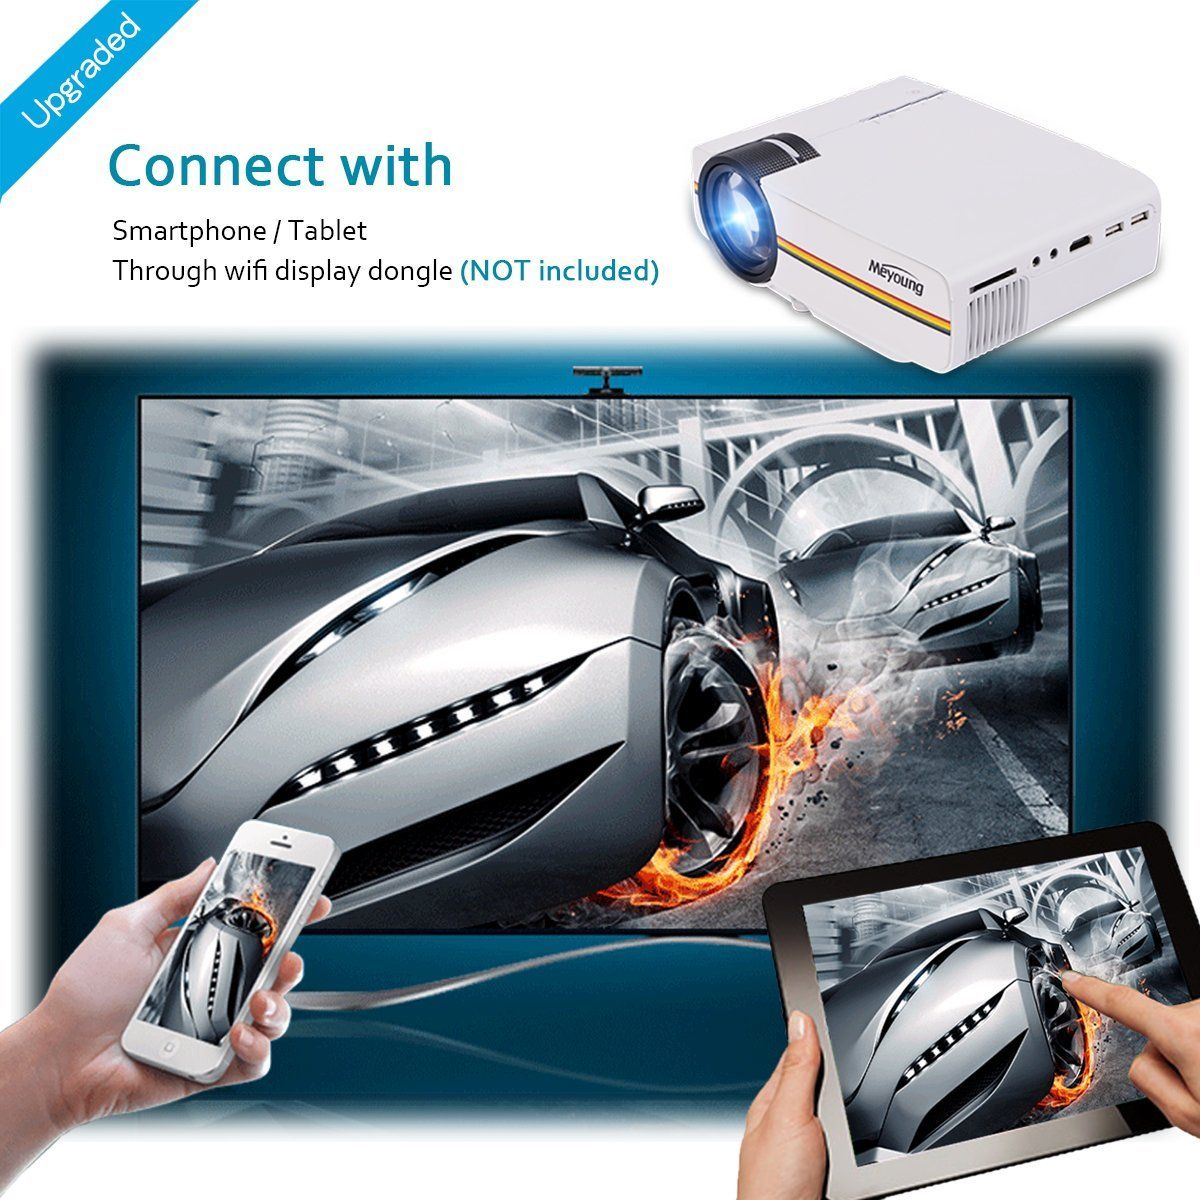 Meyoung portable projector support 1080p 1200